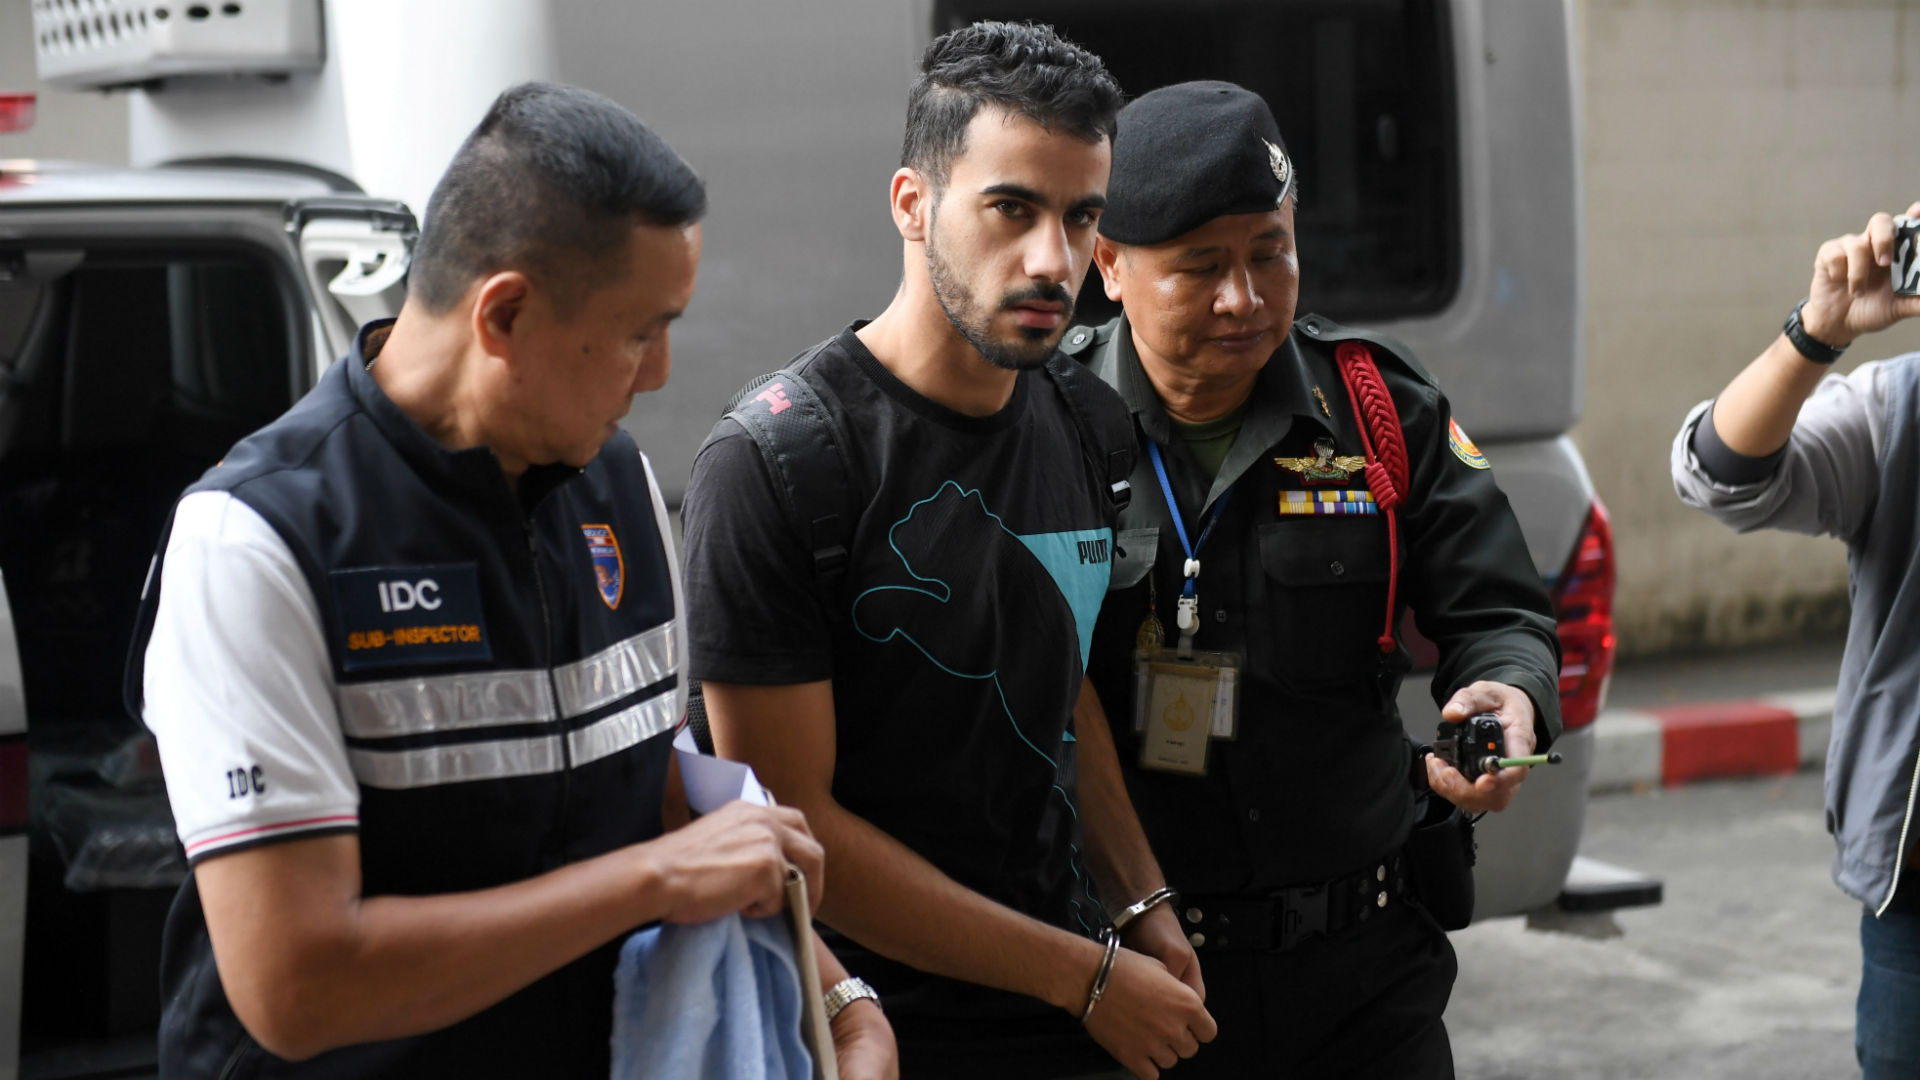 Bahrani football player being held in Thailand continues to draw global attention, will be held until at least mid April A refugee footballer who